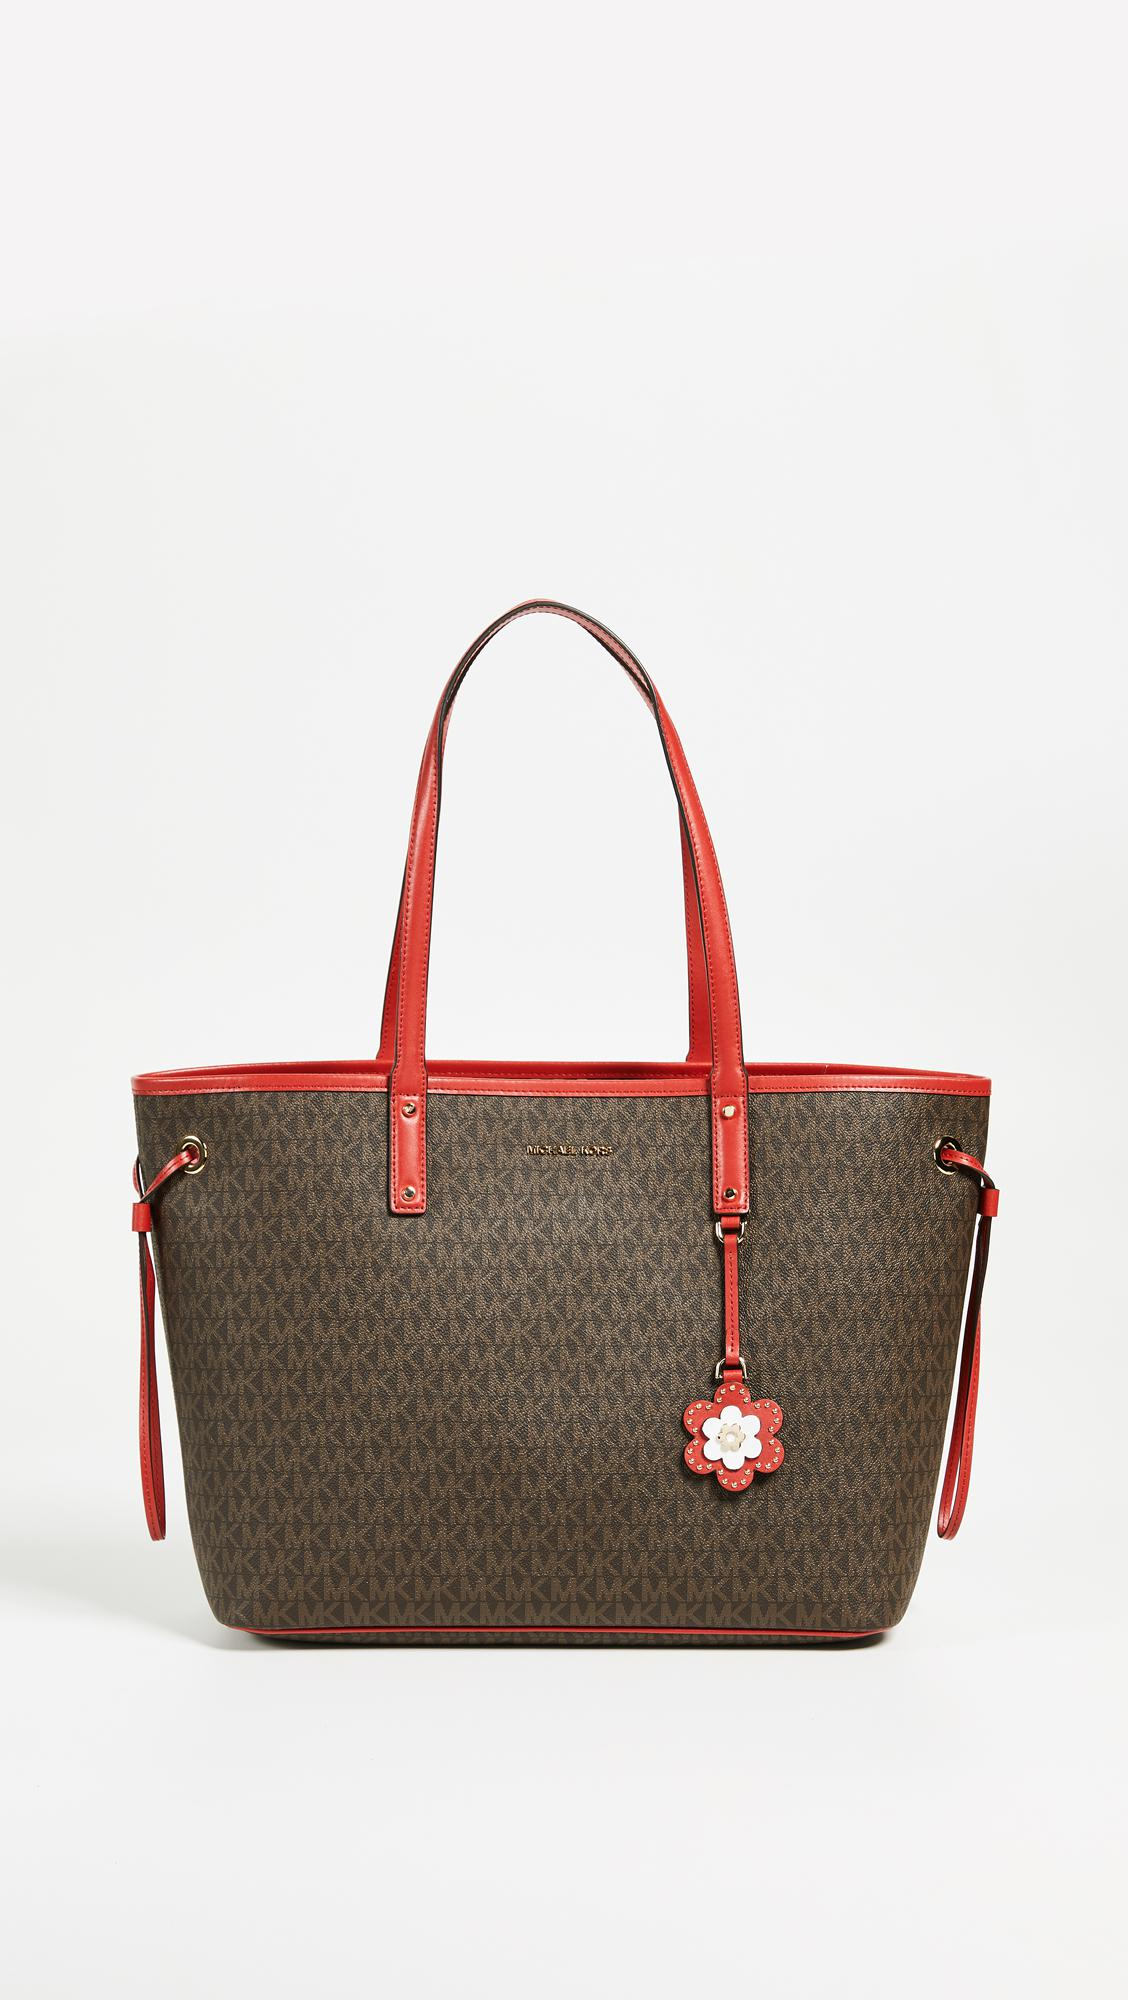 0d296459e7a2 ... order gallery. previously sold at shopbop womens reversible bags womens michael  kors 512ed 333c6